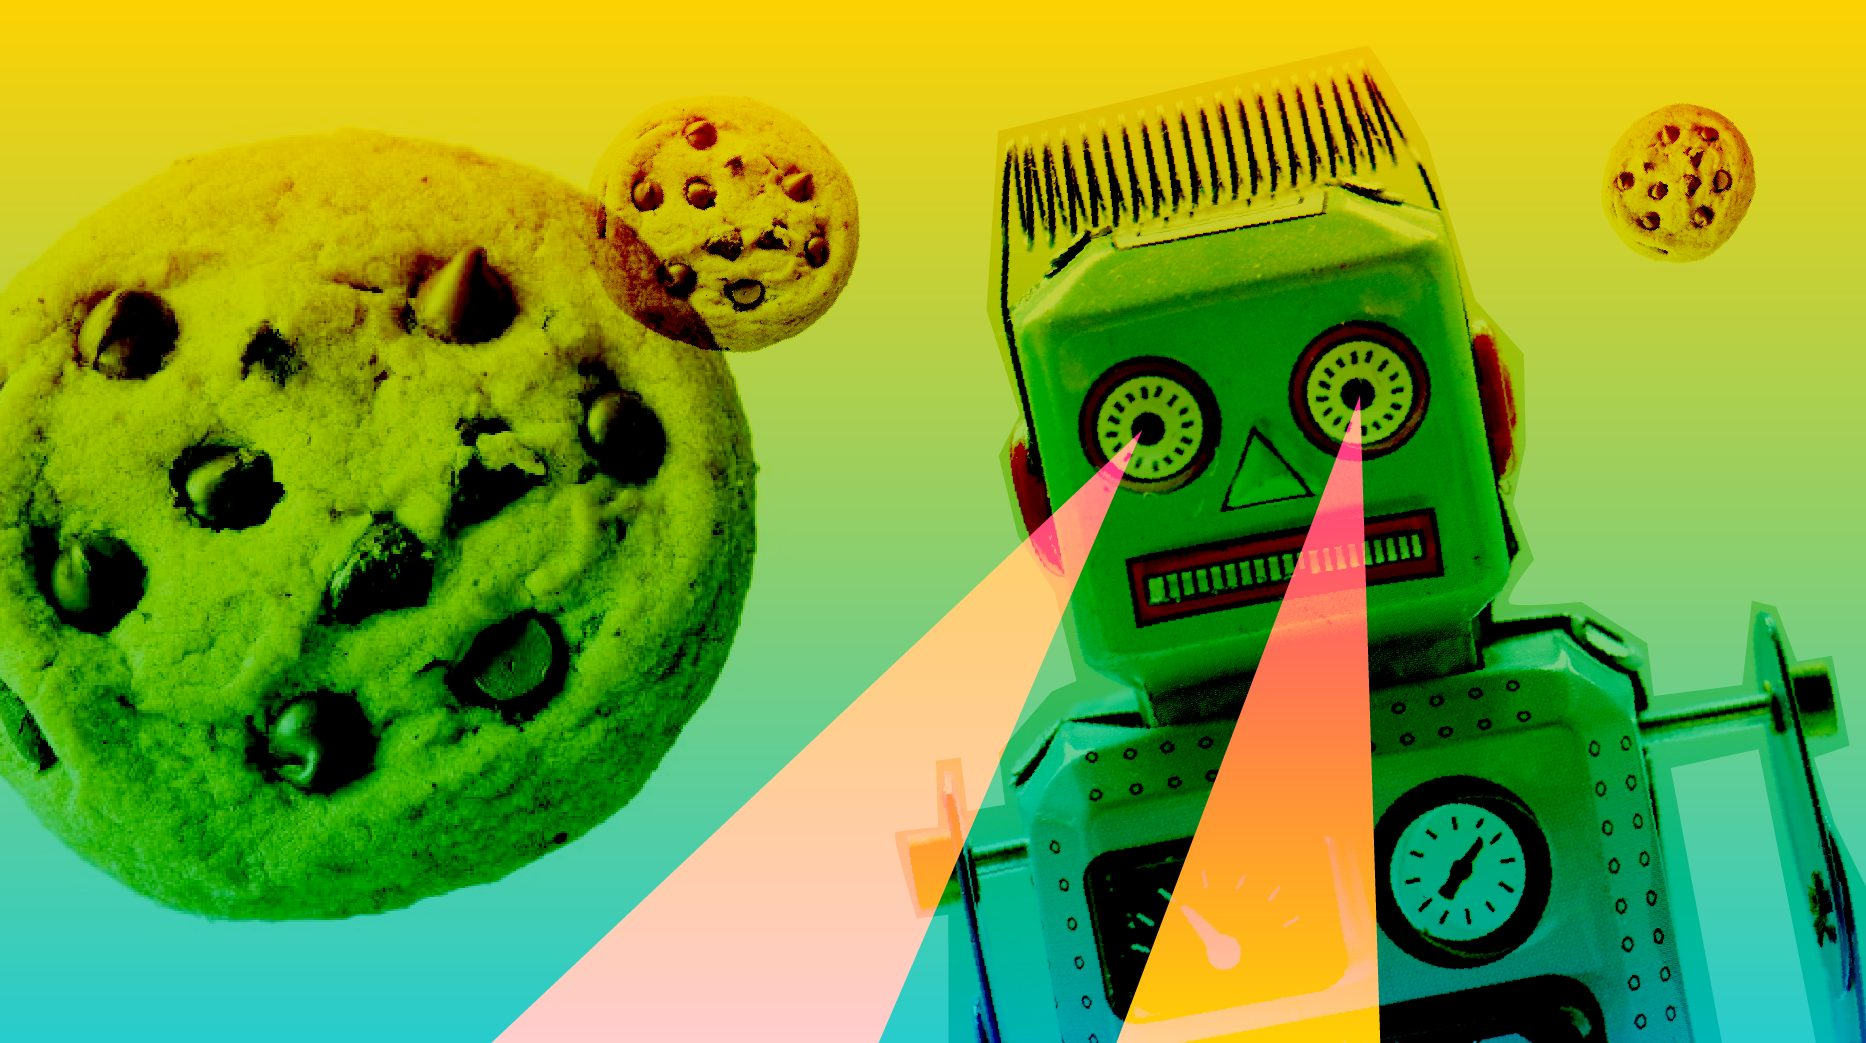 The death of the cookie and the invasion of the bots